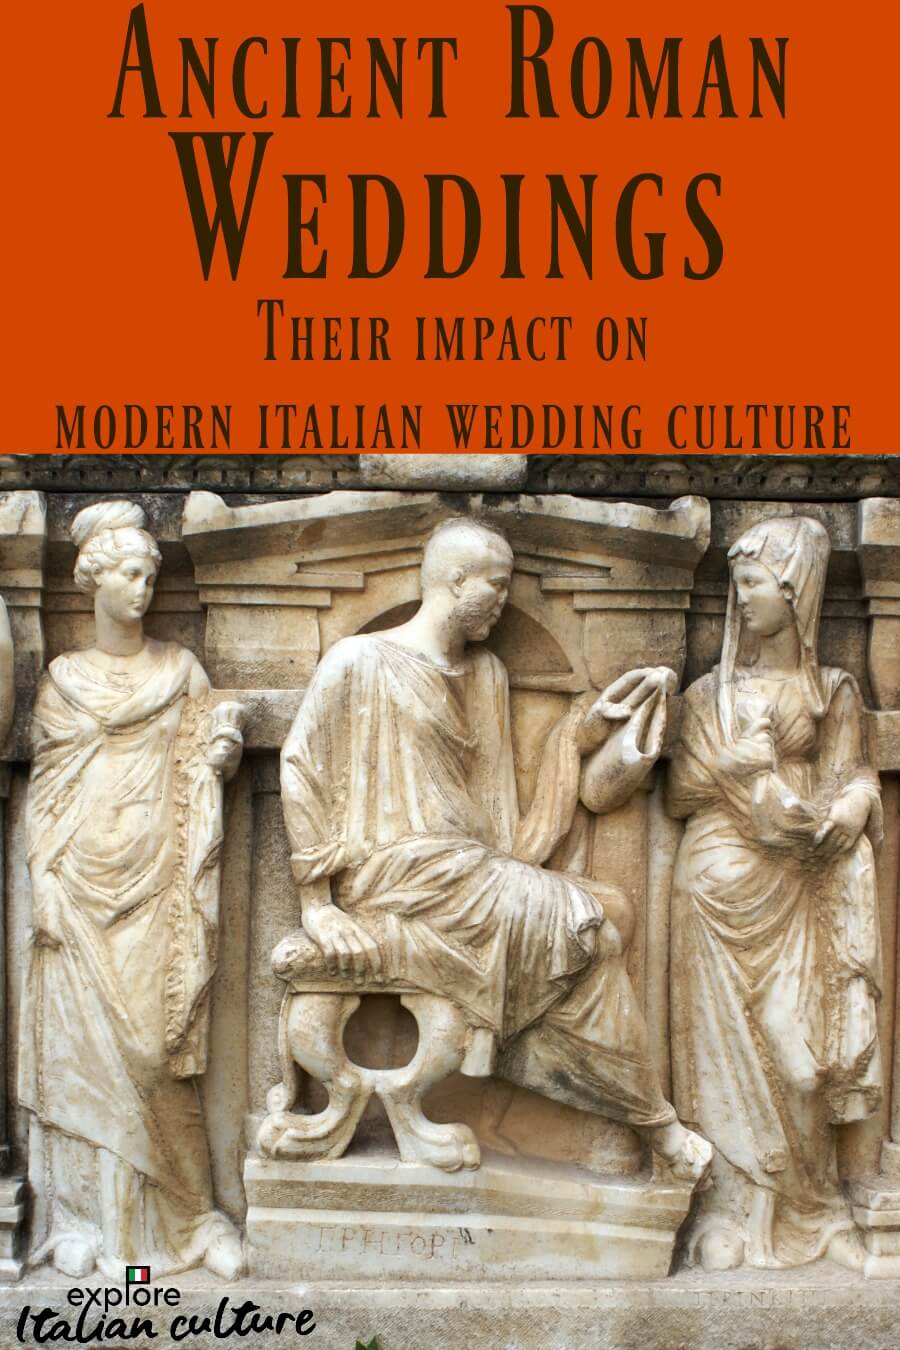 Ancient Roman weddings and their impact on modern Italian wedding traditions. Pin for later.